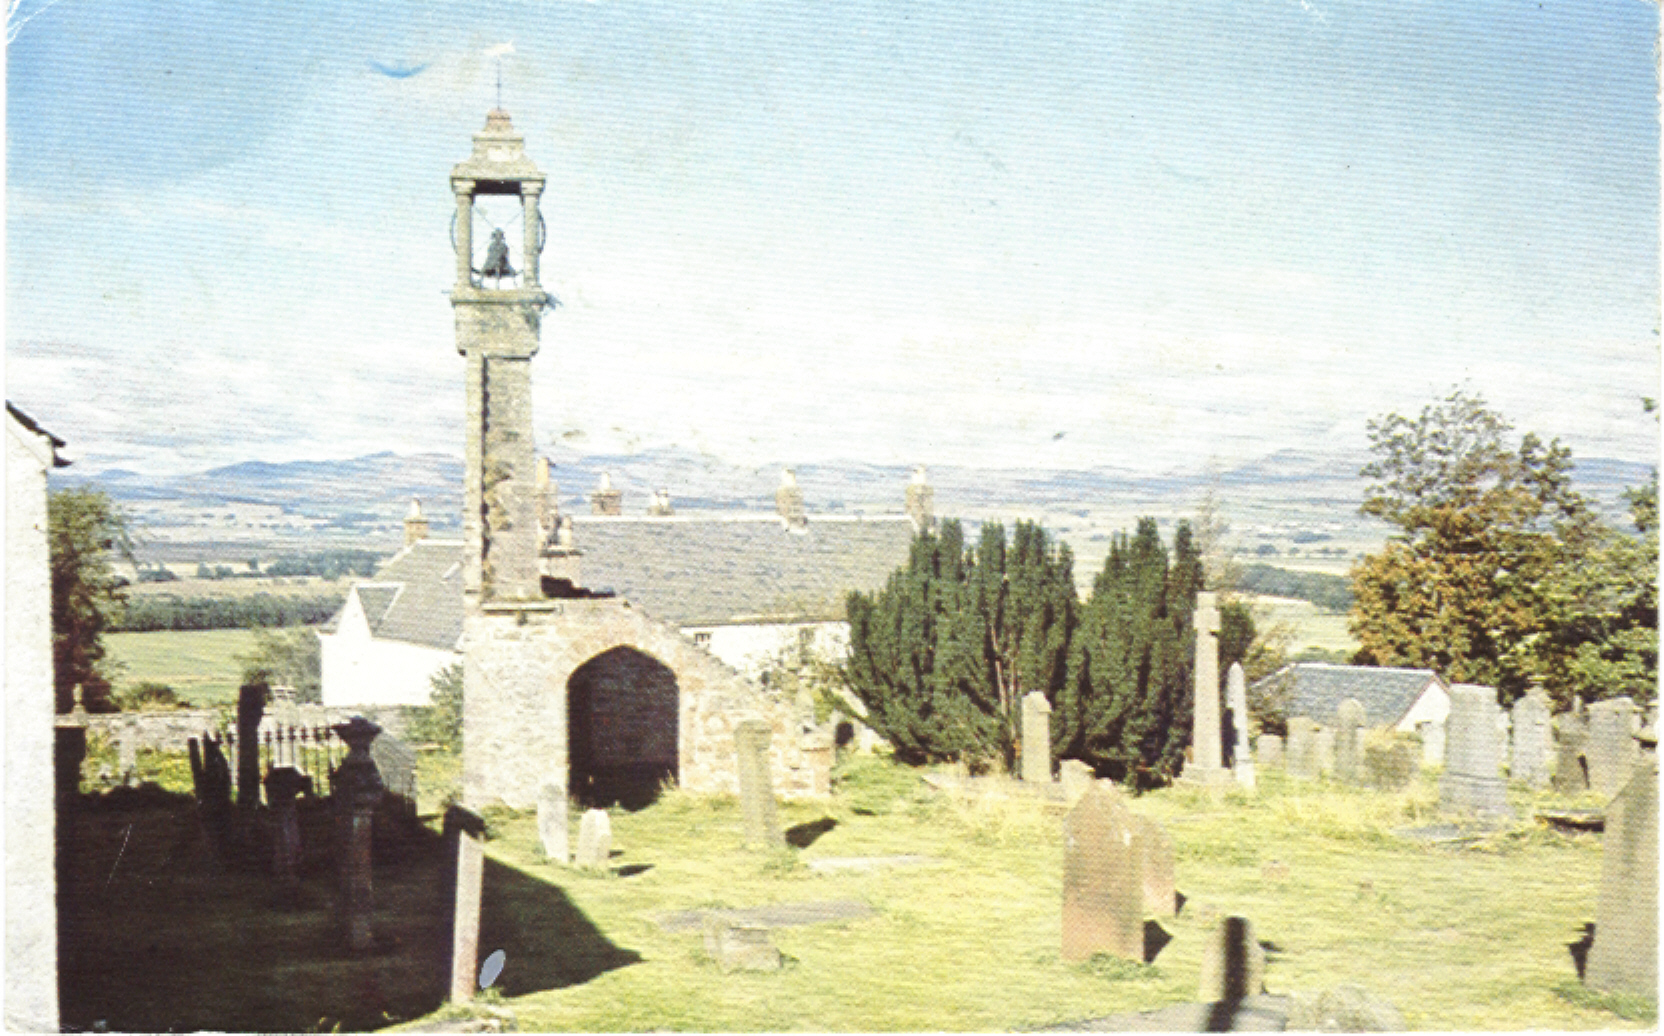 Old Church and graveyard in Kippen Scotland